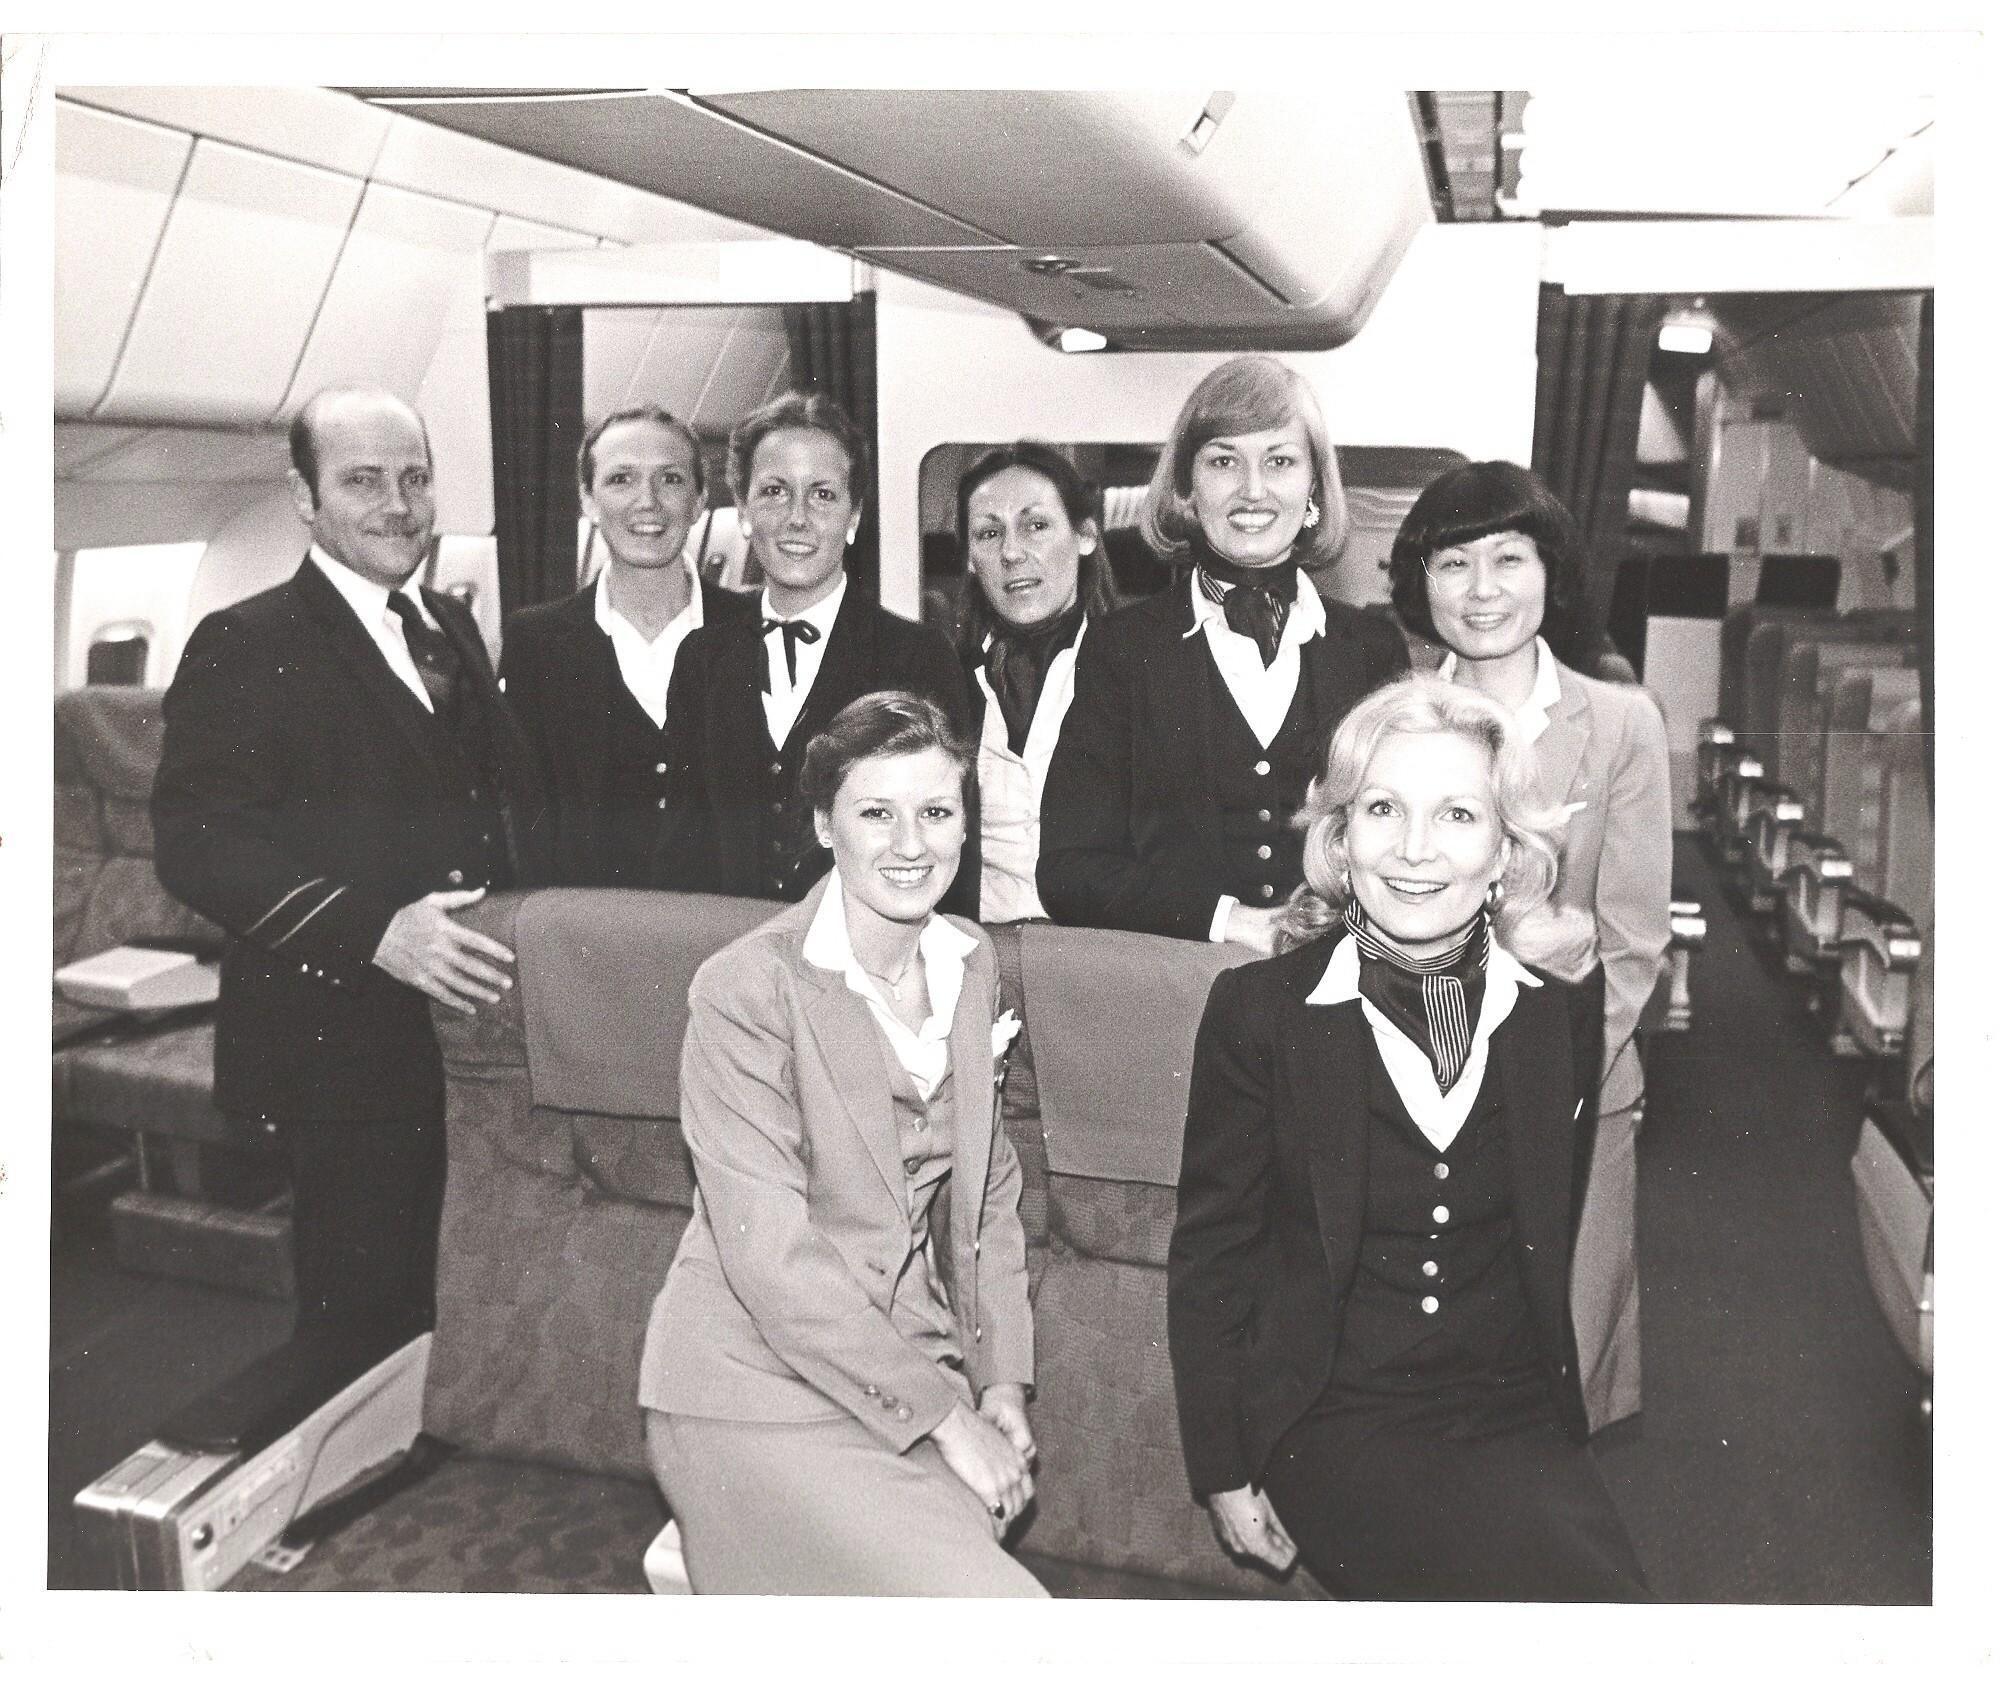 1980s Purser Ray LeDour posing with fellow crew members in the first class cabin of a Pan Am Lockheed L1011-500.  This aircraft only servced in the Pan Am fleet for 6 years.